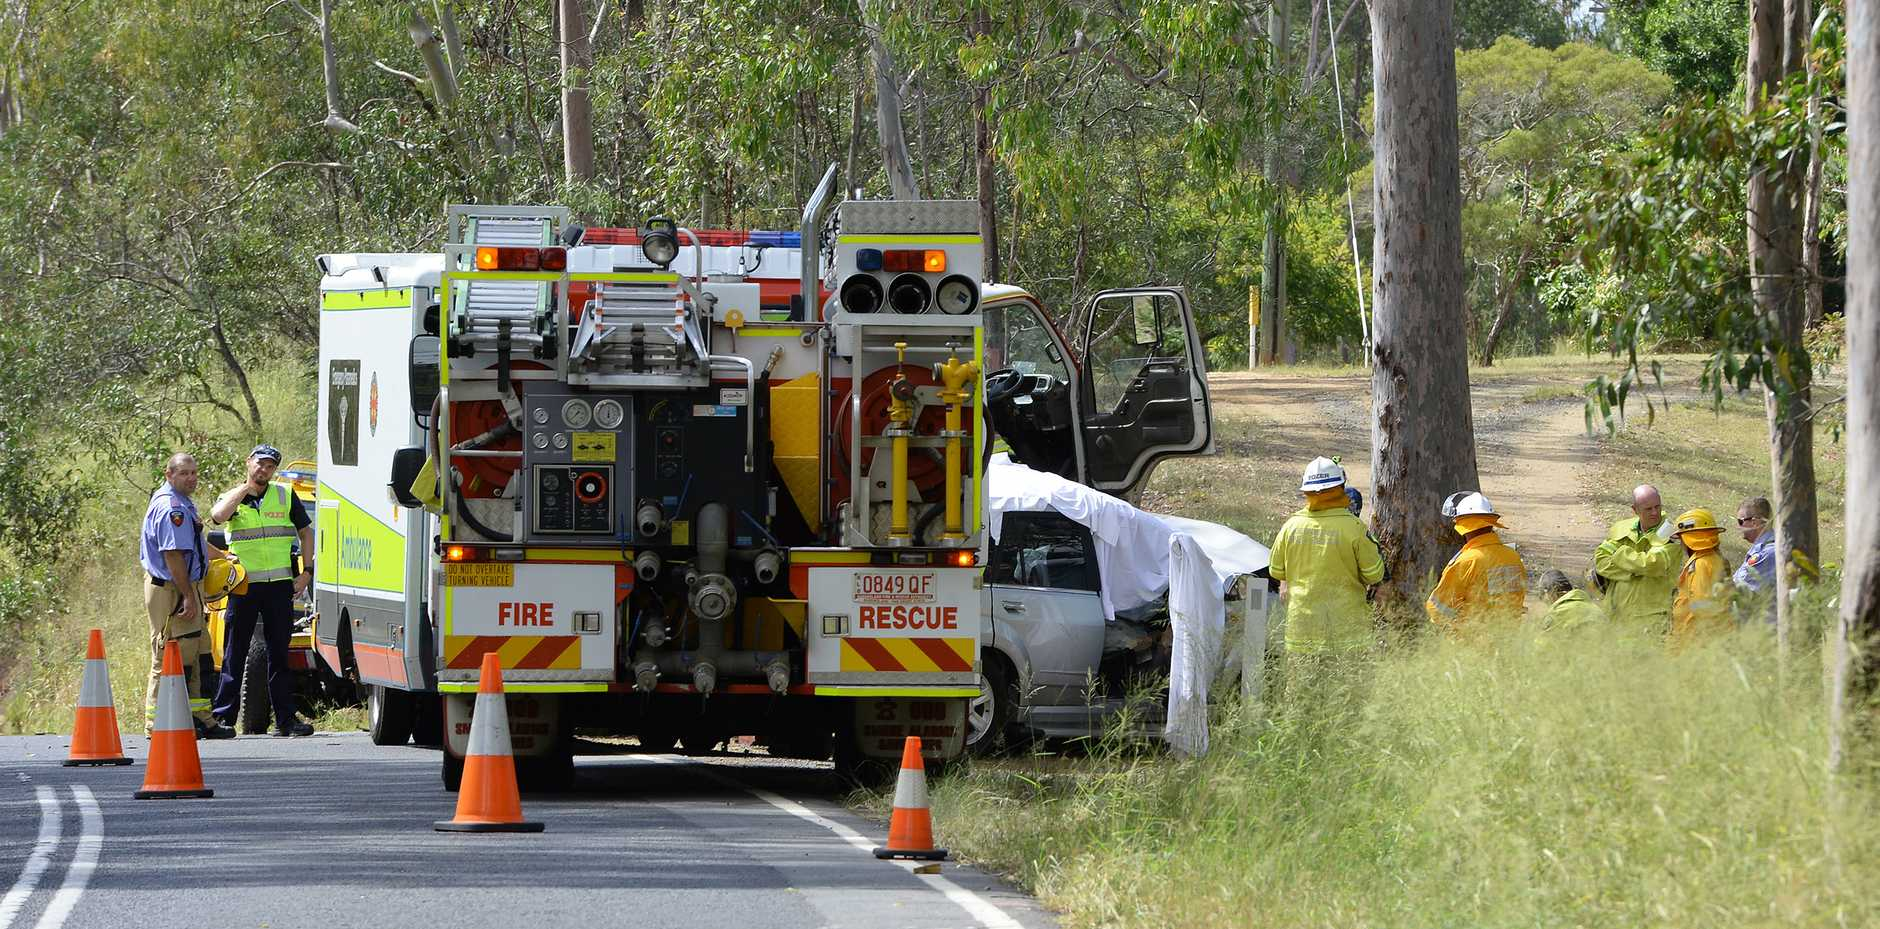 A man has lost his life after losing control of his vehicle on Rosewood - Laidley Road near Grandchester on Tuesday morning.